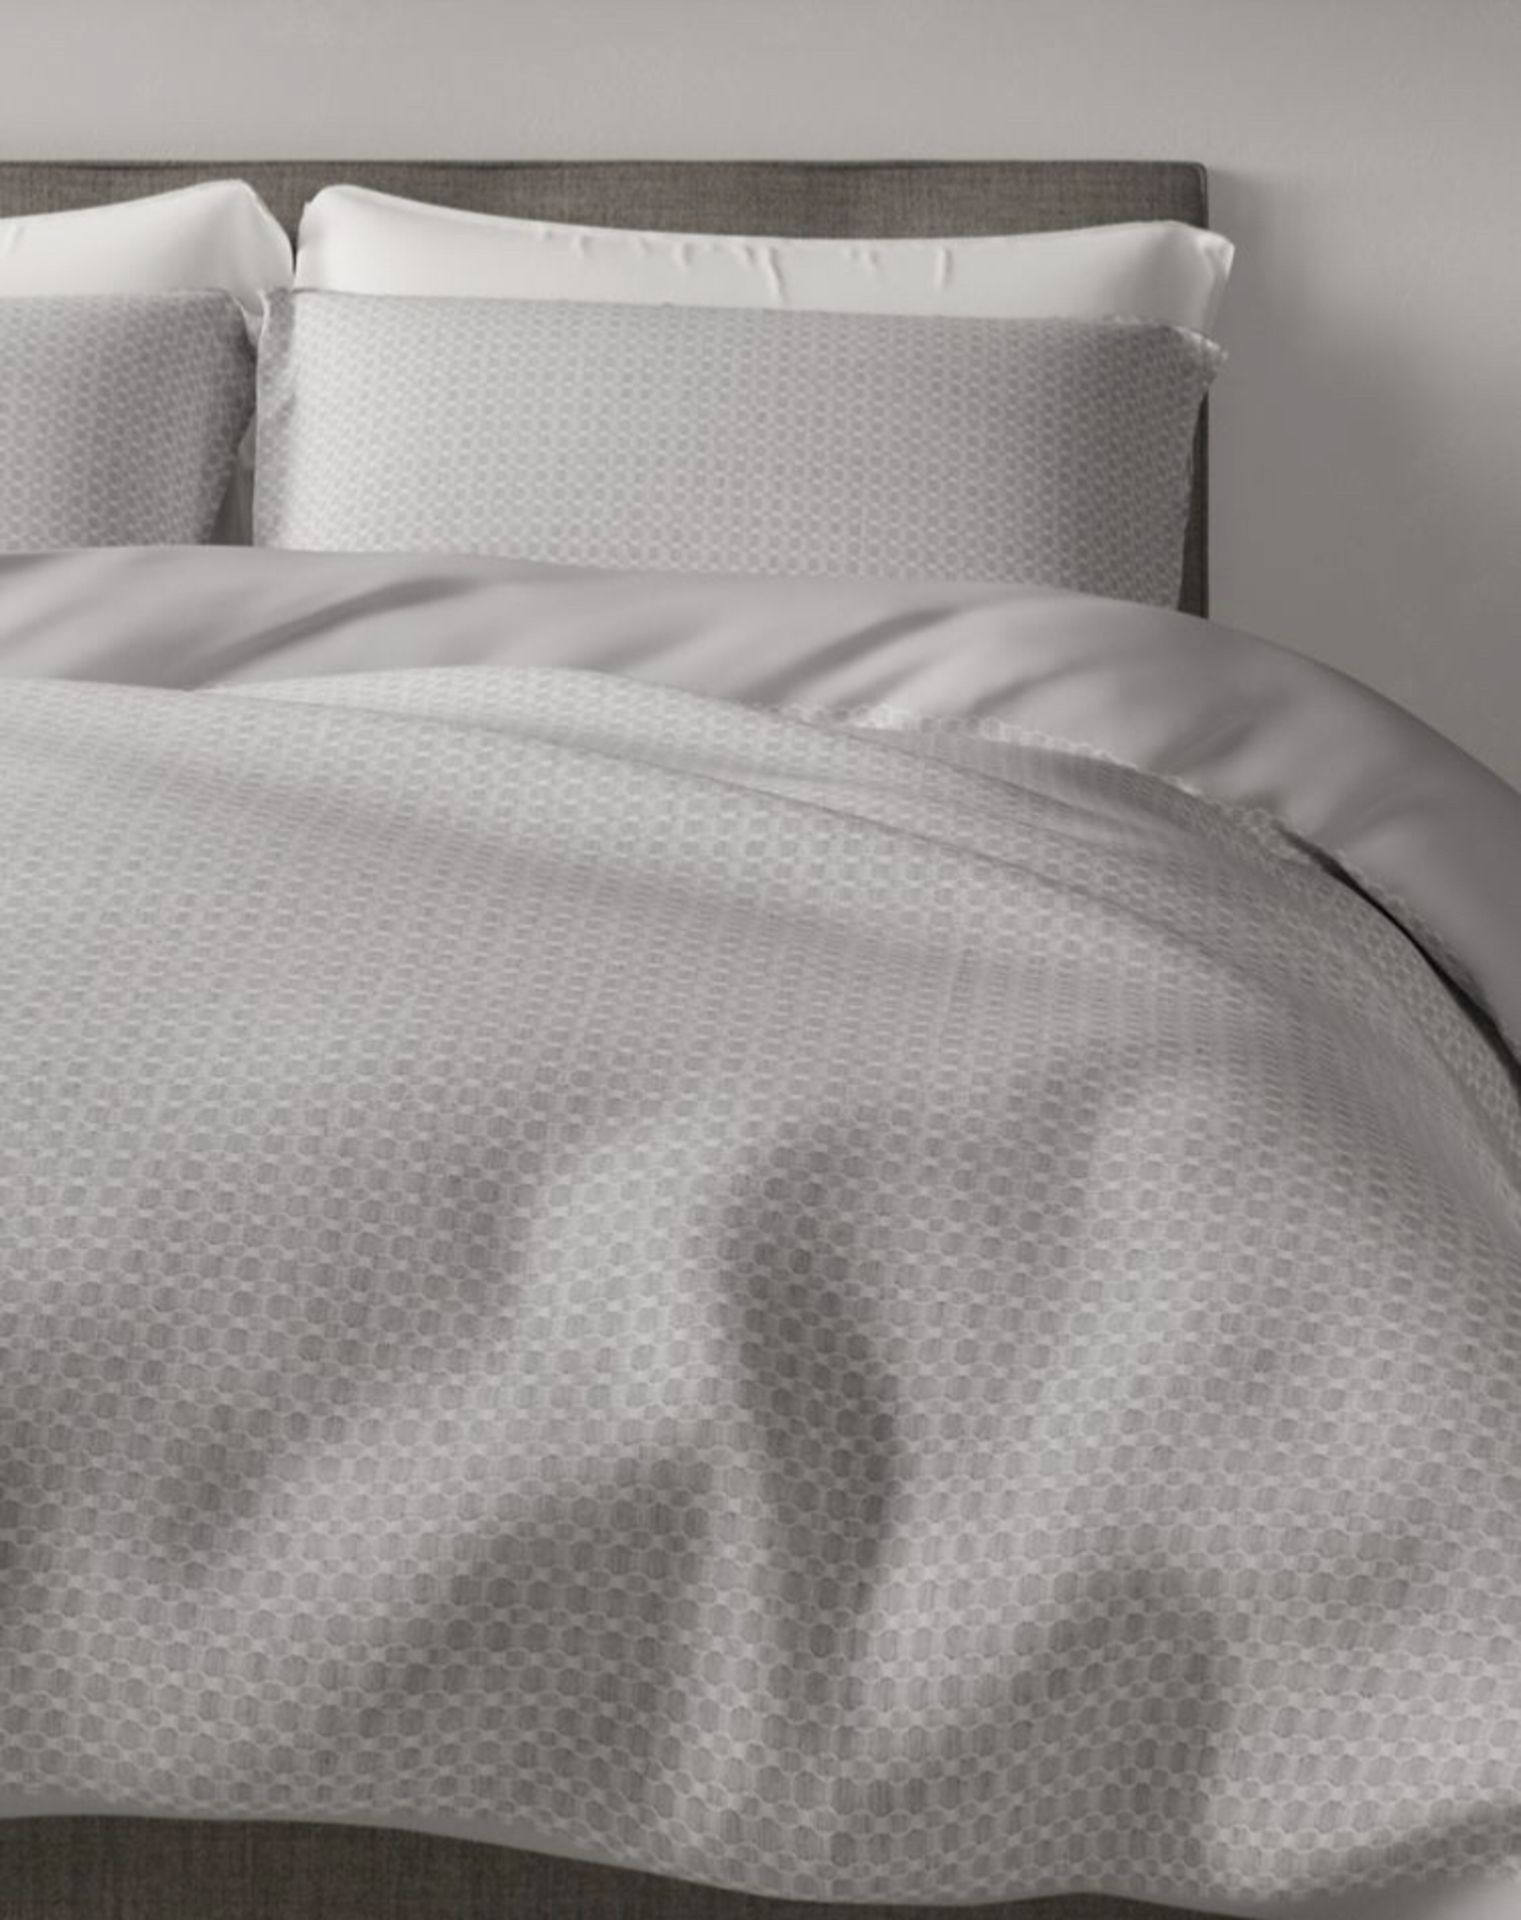 Lot 49 - Pure Cotton Textured Waffle Bedding Set, Super King